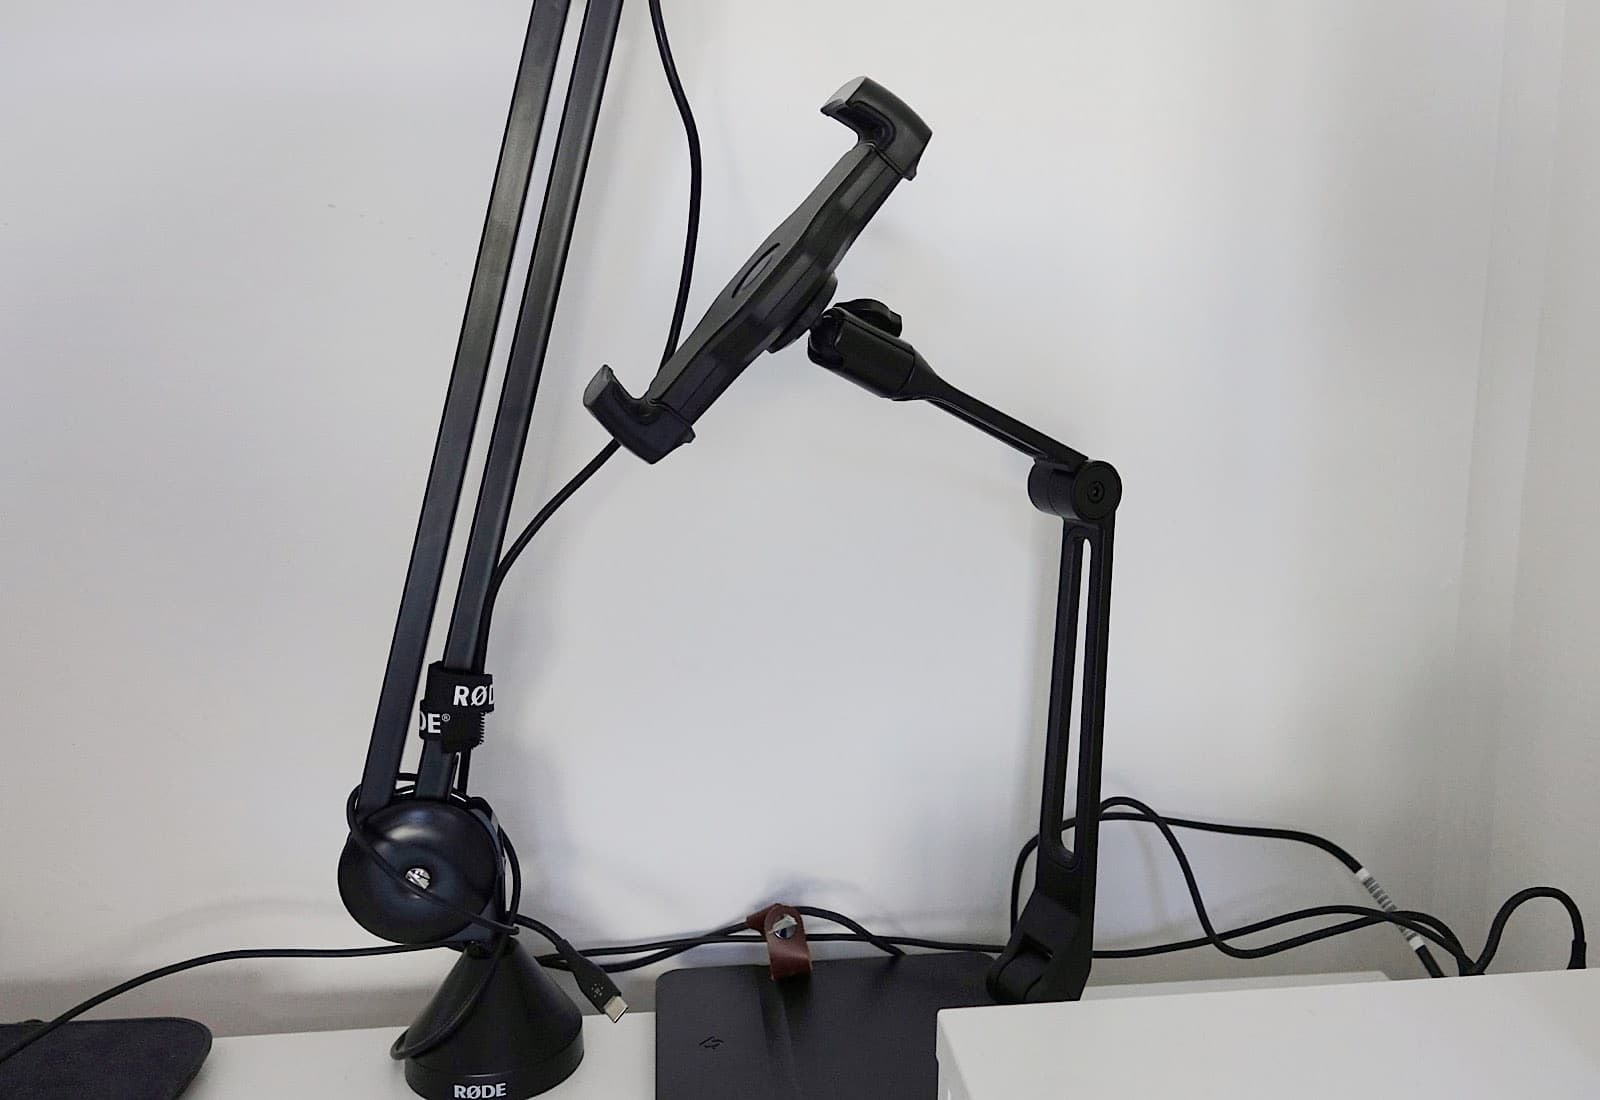 The HoverBar Duo is basically a boom arm with a device clamp.